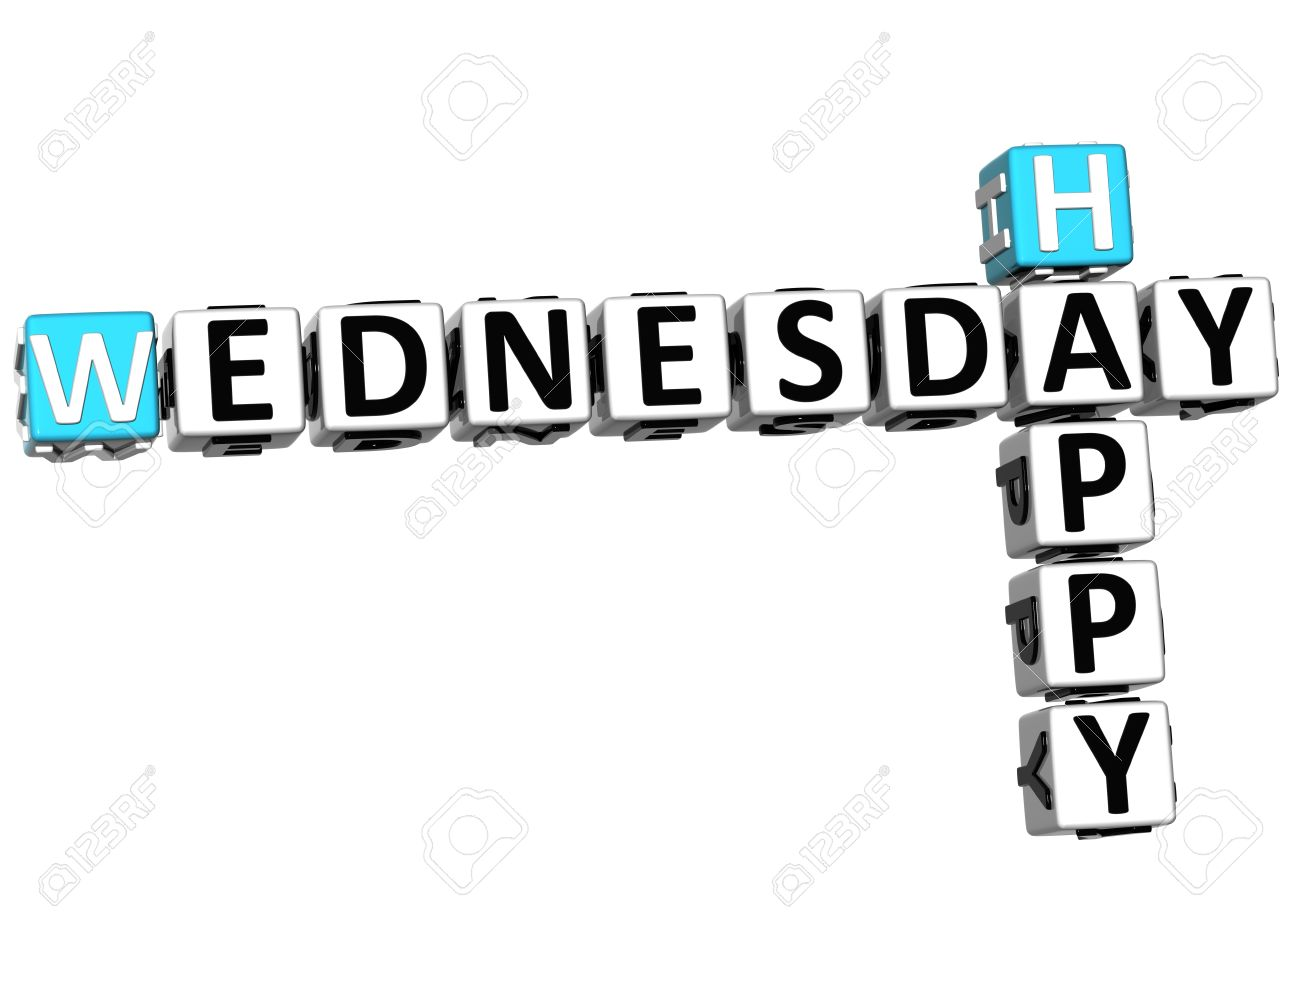 happy wednesday: 3D Happy Wednesday Cros-happy wednesday: 3D Happy Wednesday Crossword on white background-13